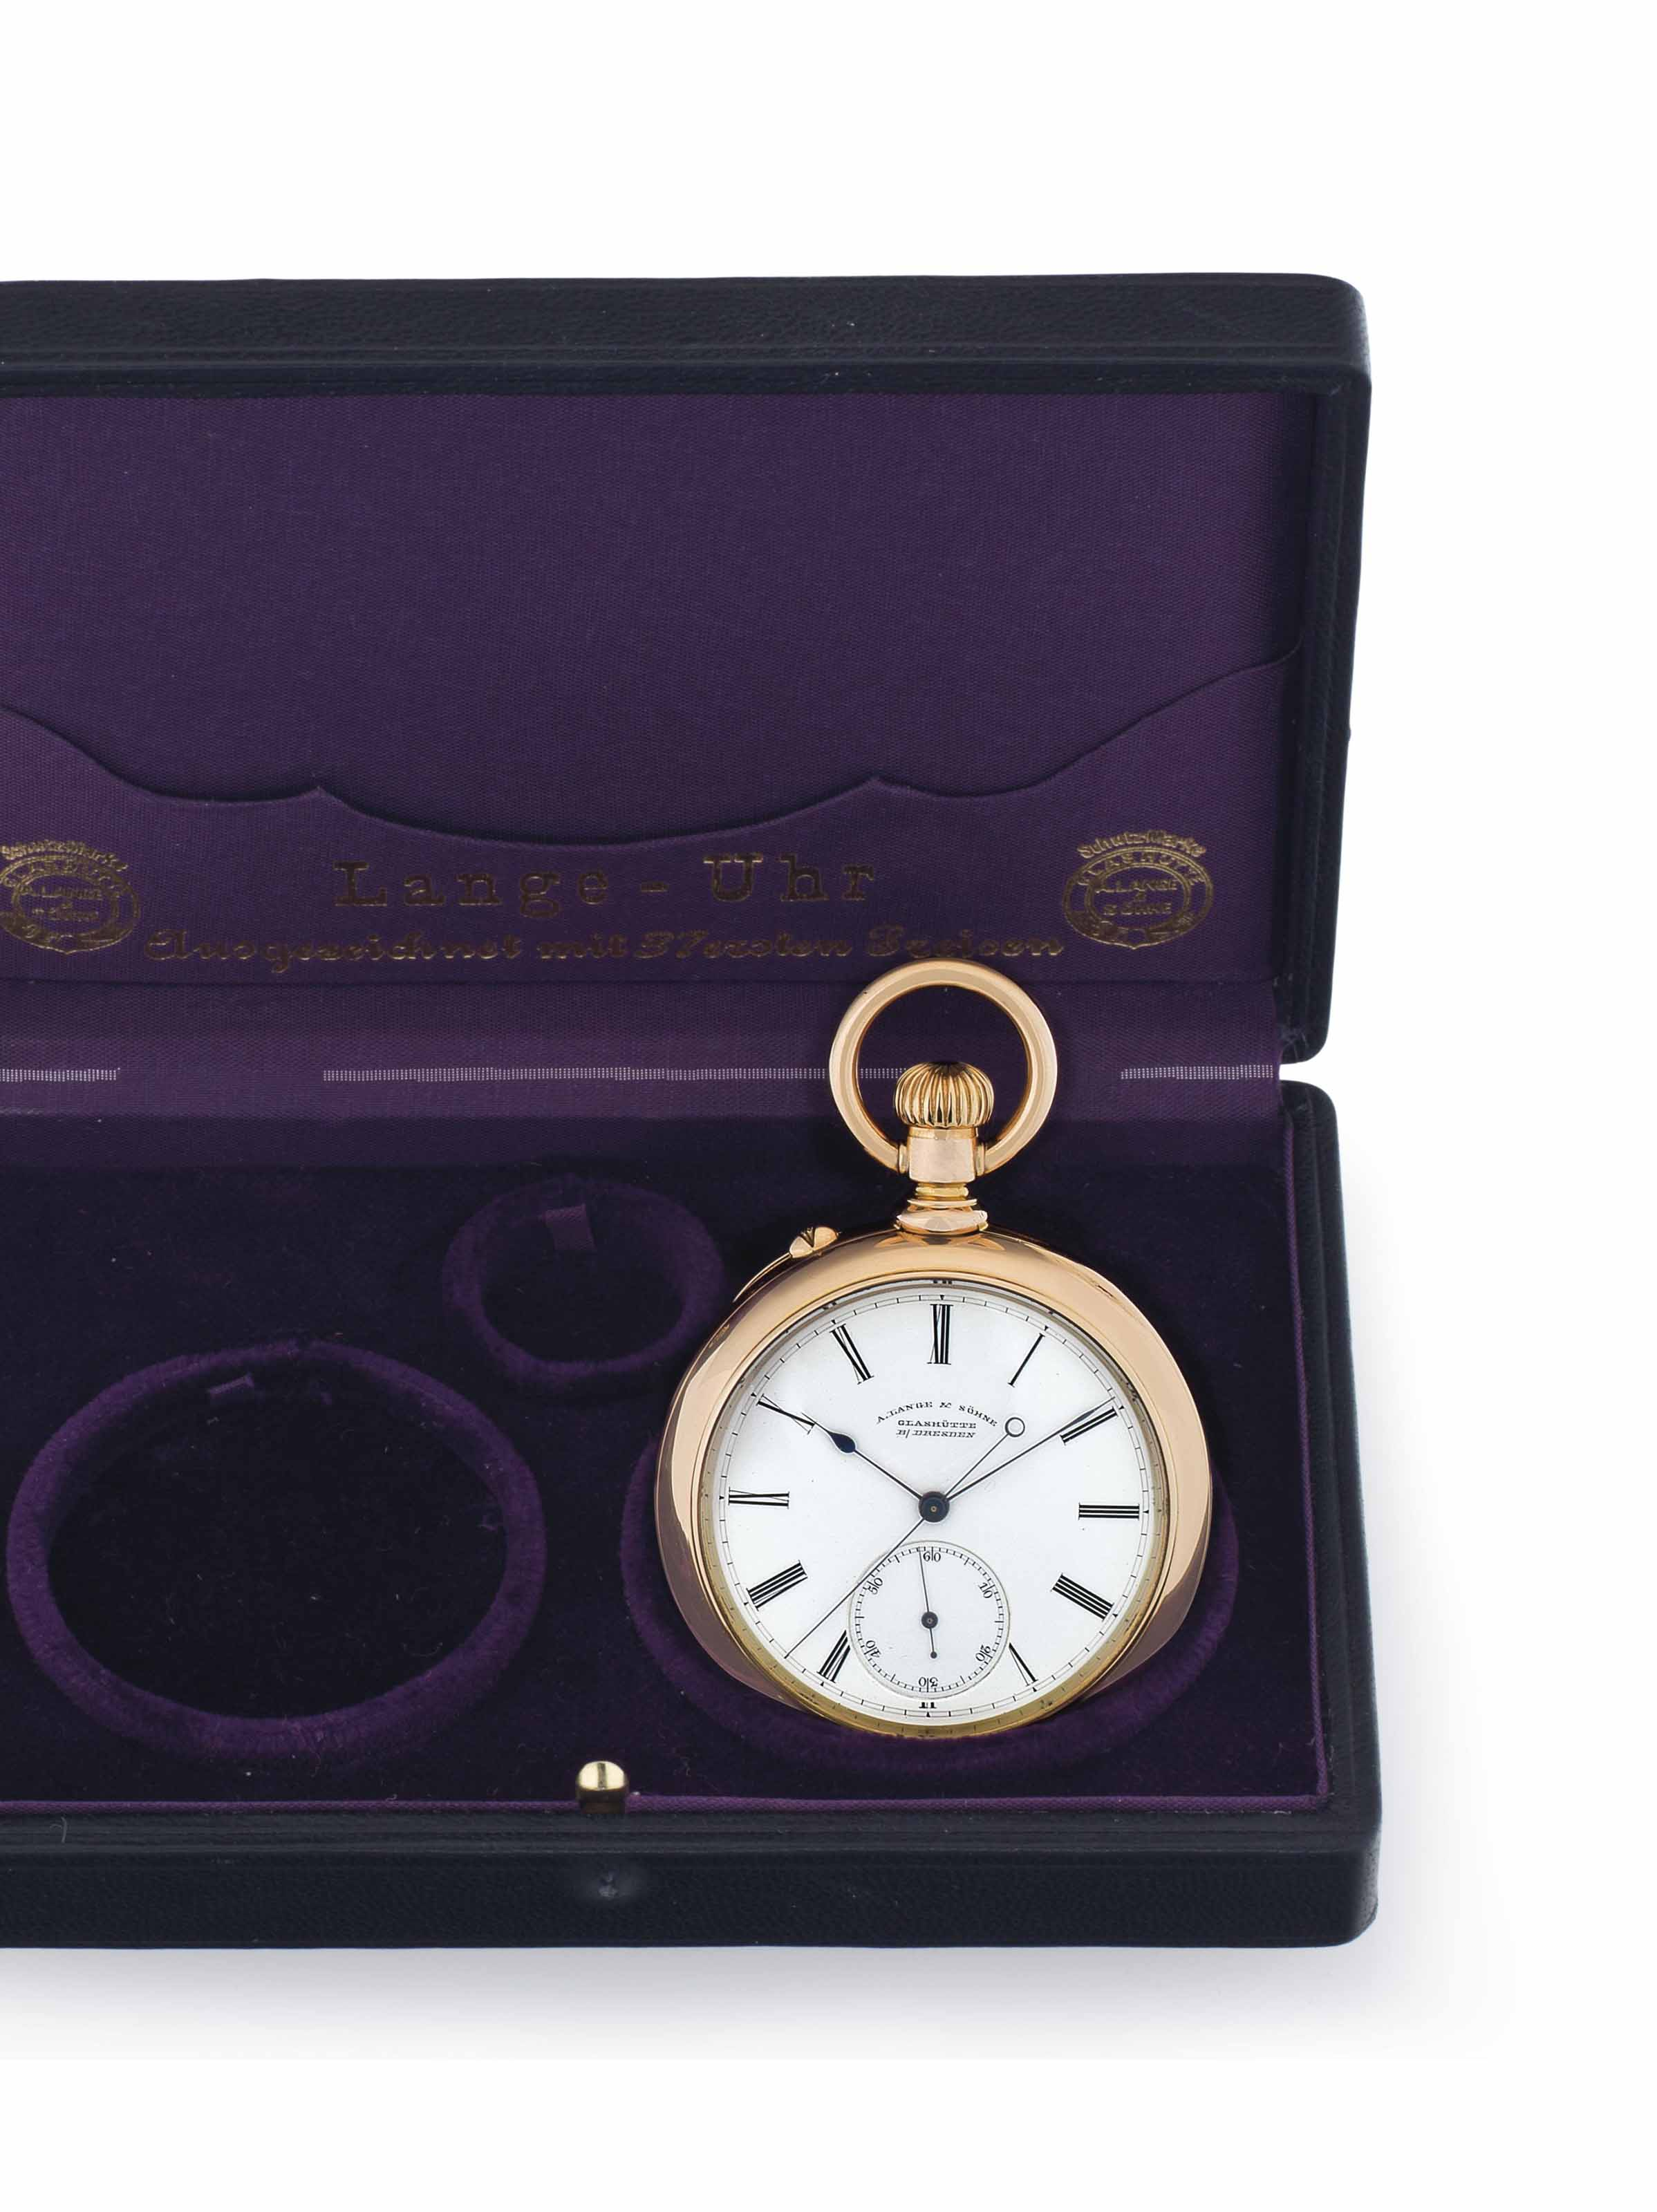 A. Lange & Söhne. A Fine 18k Pink Gold Openface Keyless Lever Pocket Watch with Deadbeat Center Seconds